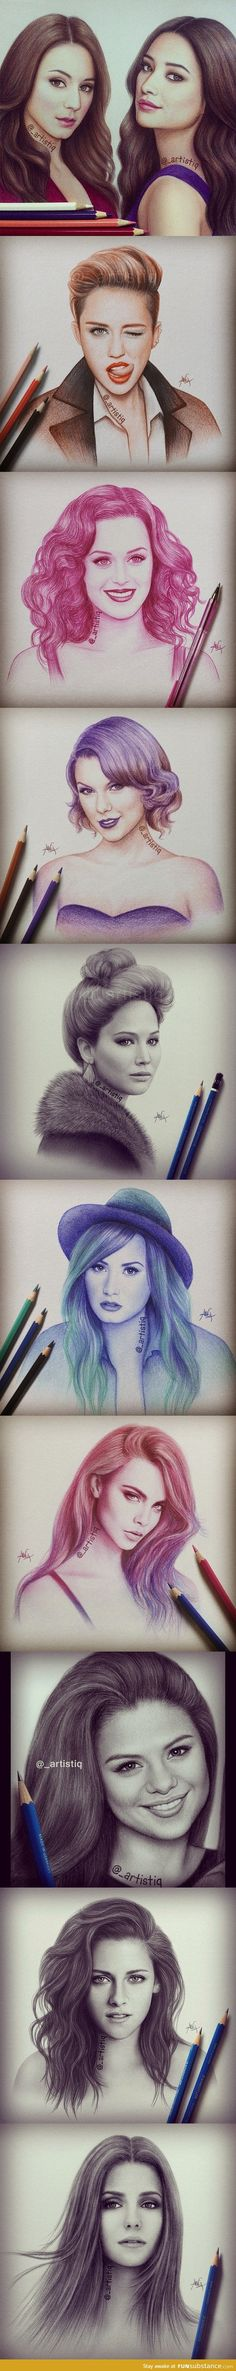 Celebrity Drawings by Artistiq